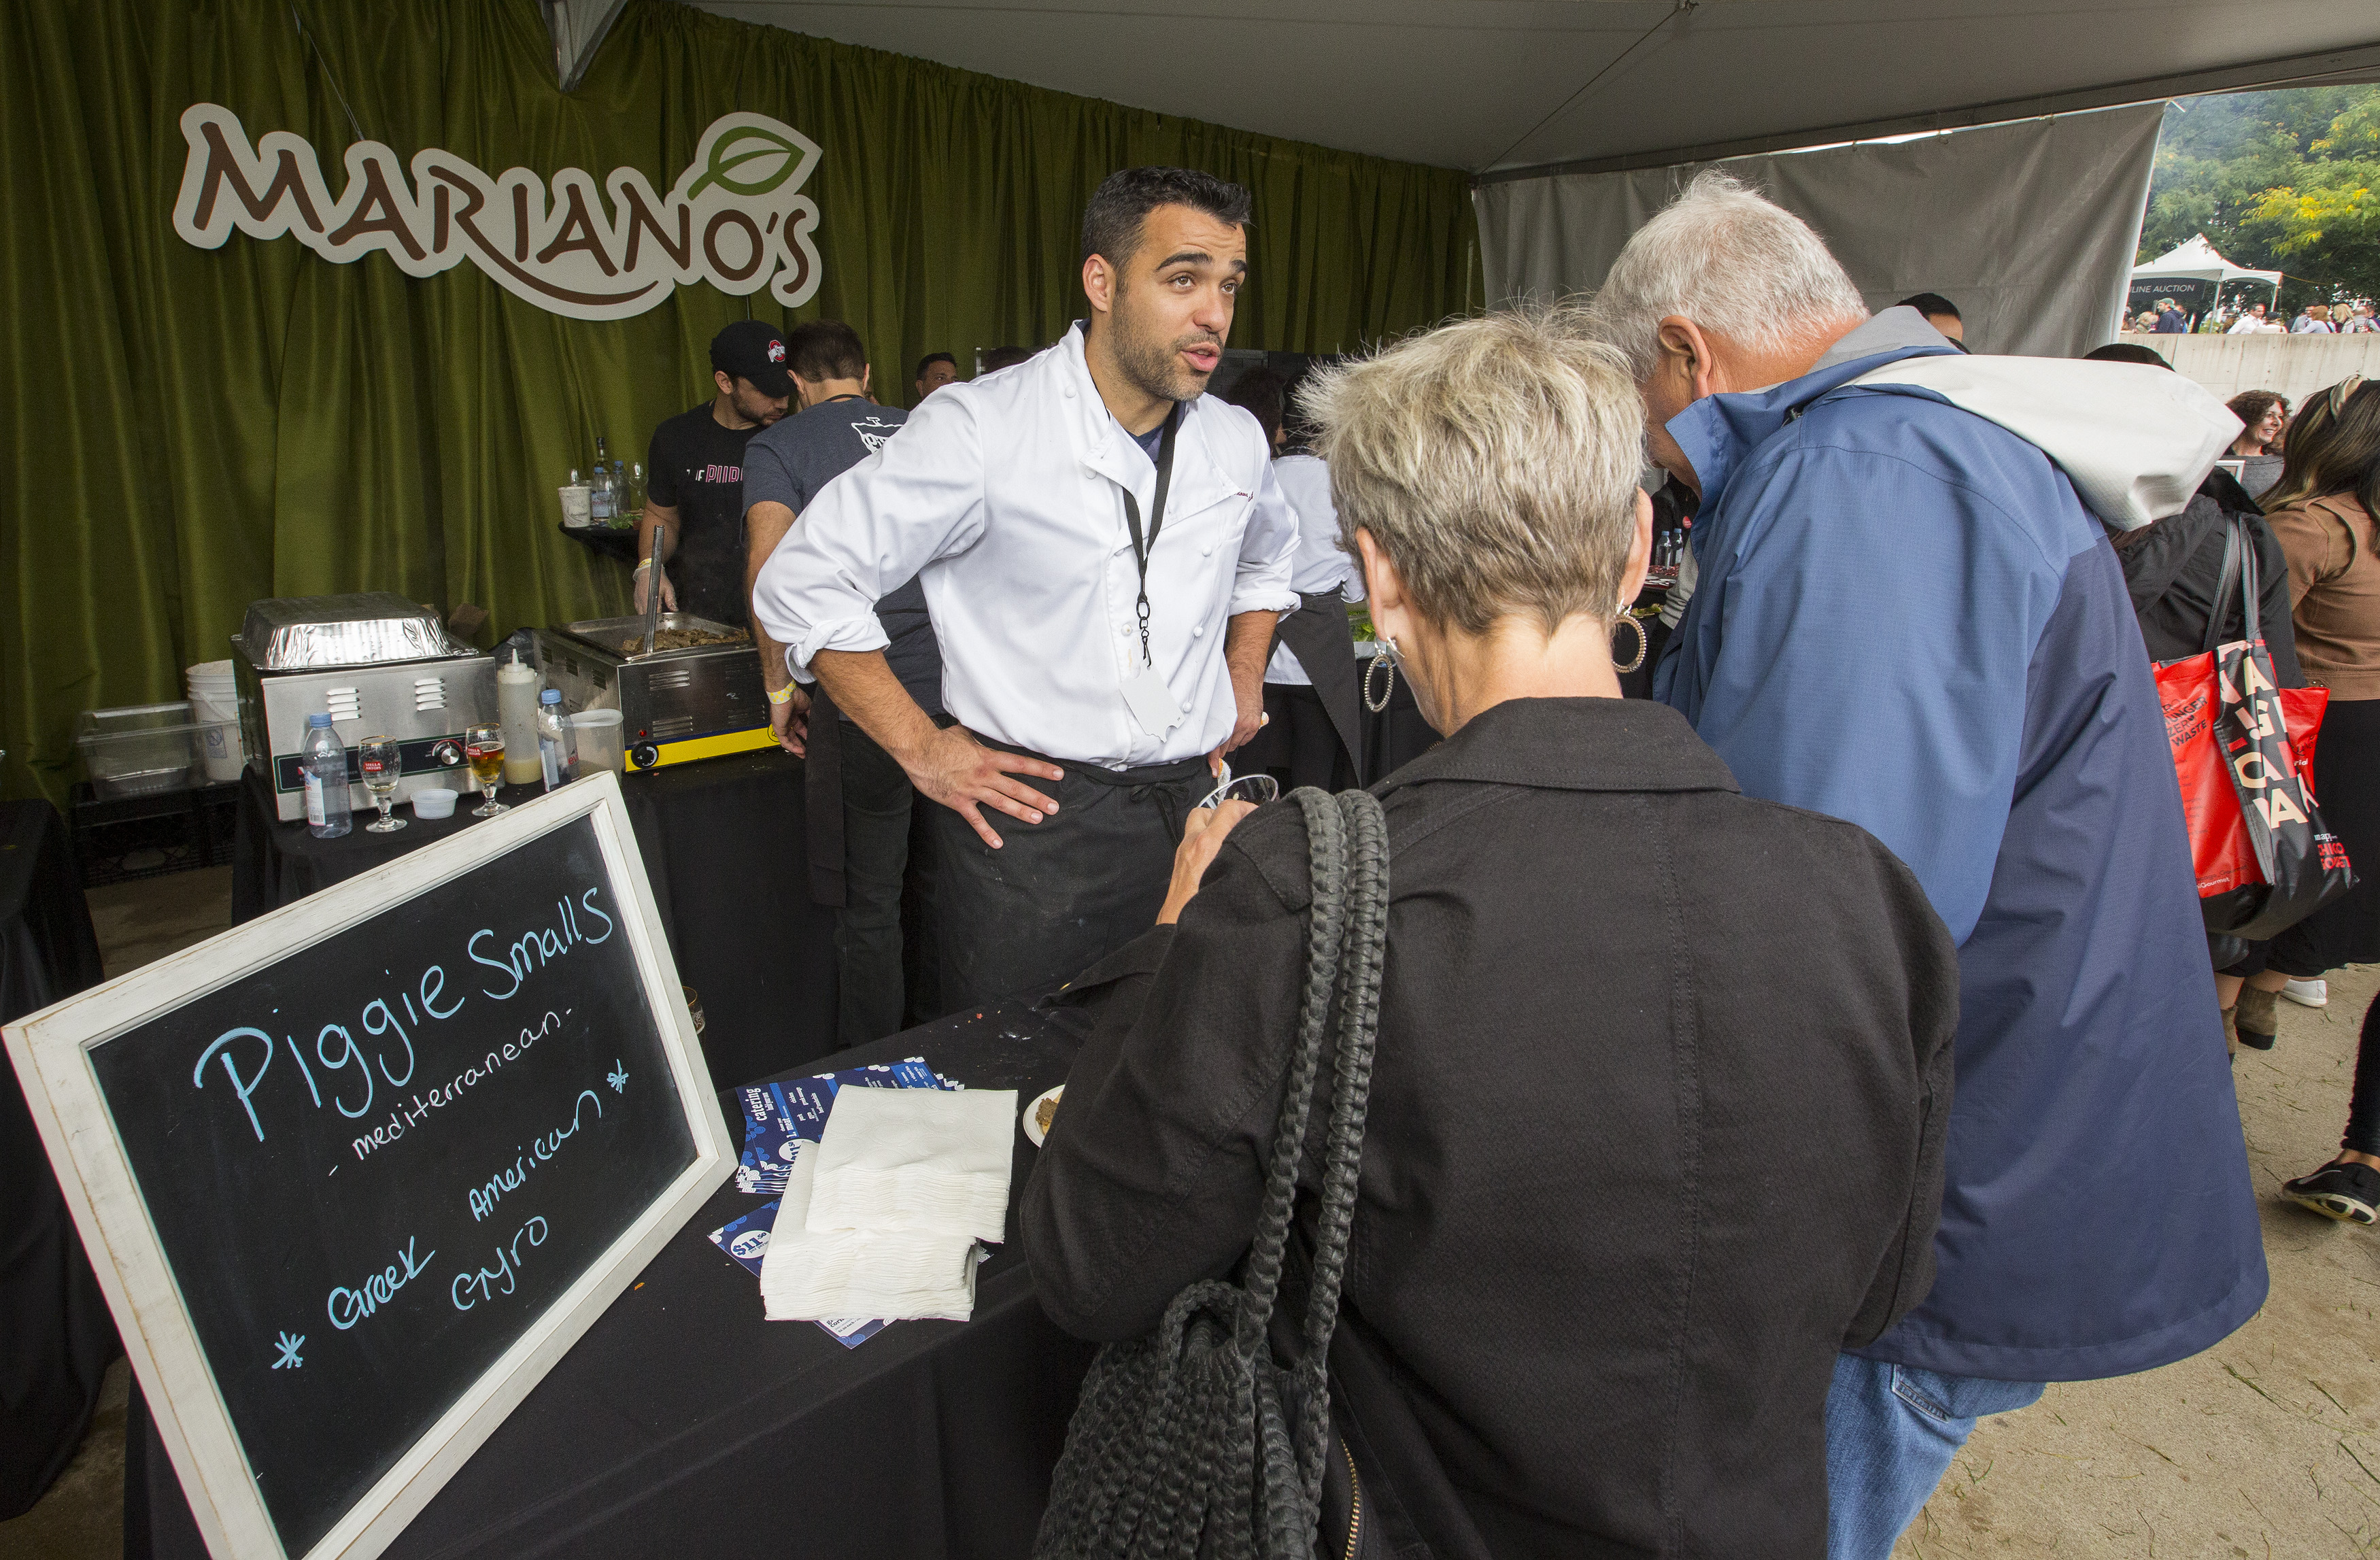 A man in a white shirt stands at a food stall at an event and talks to customers.